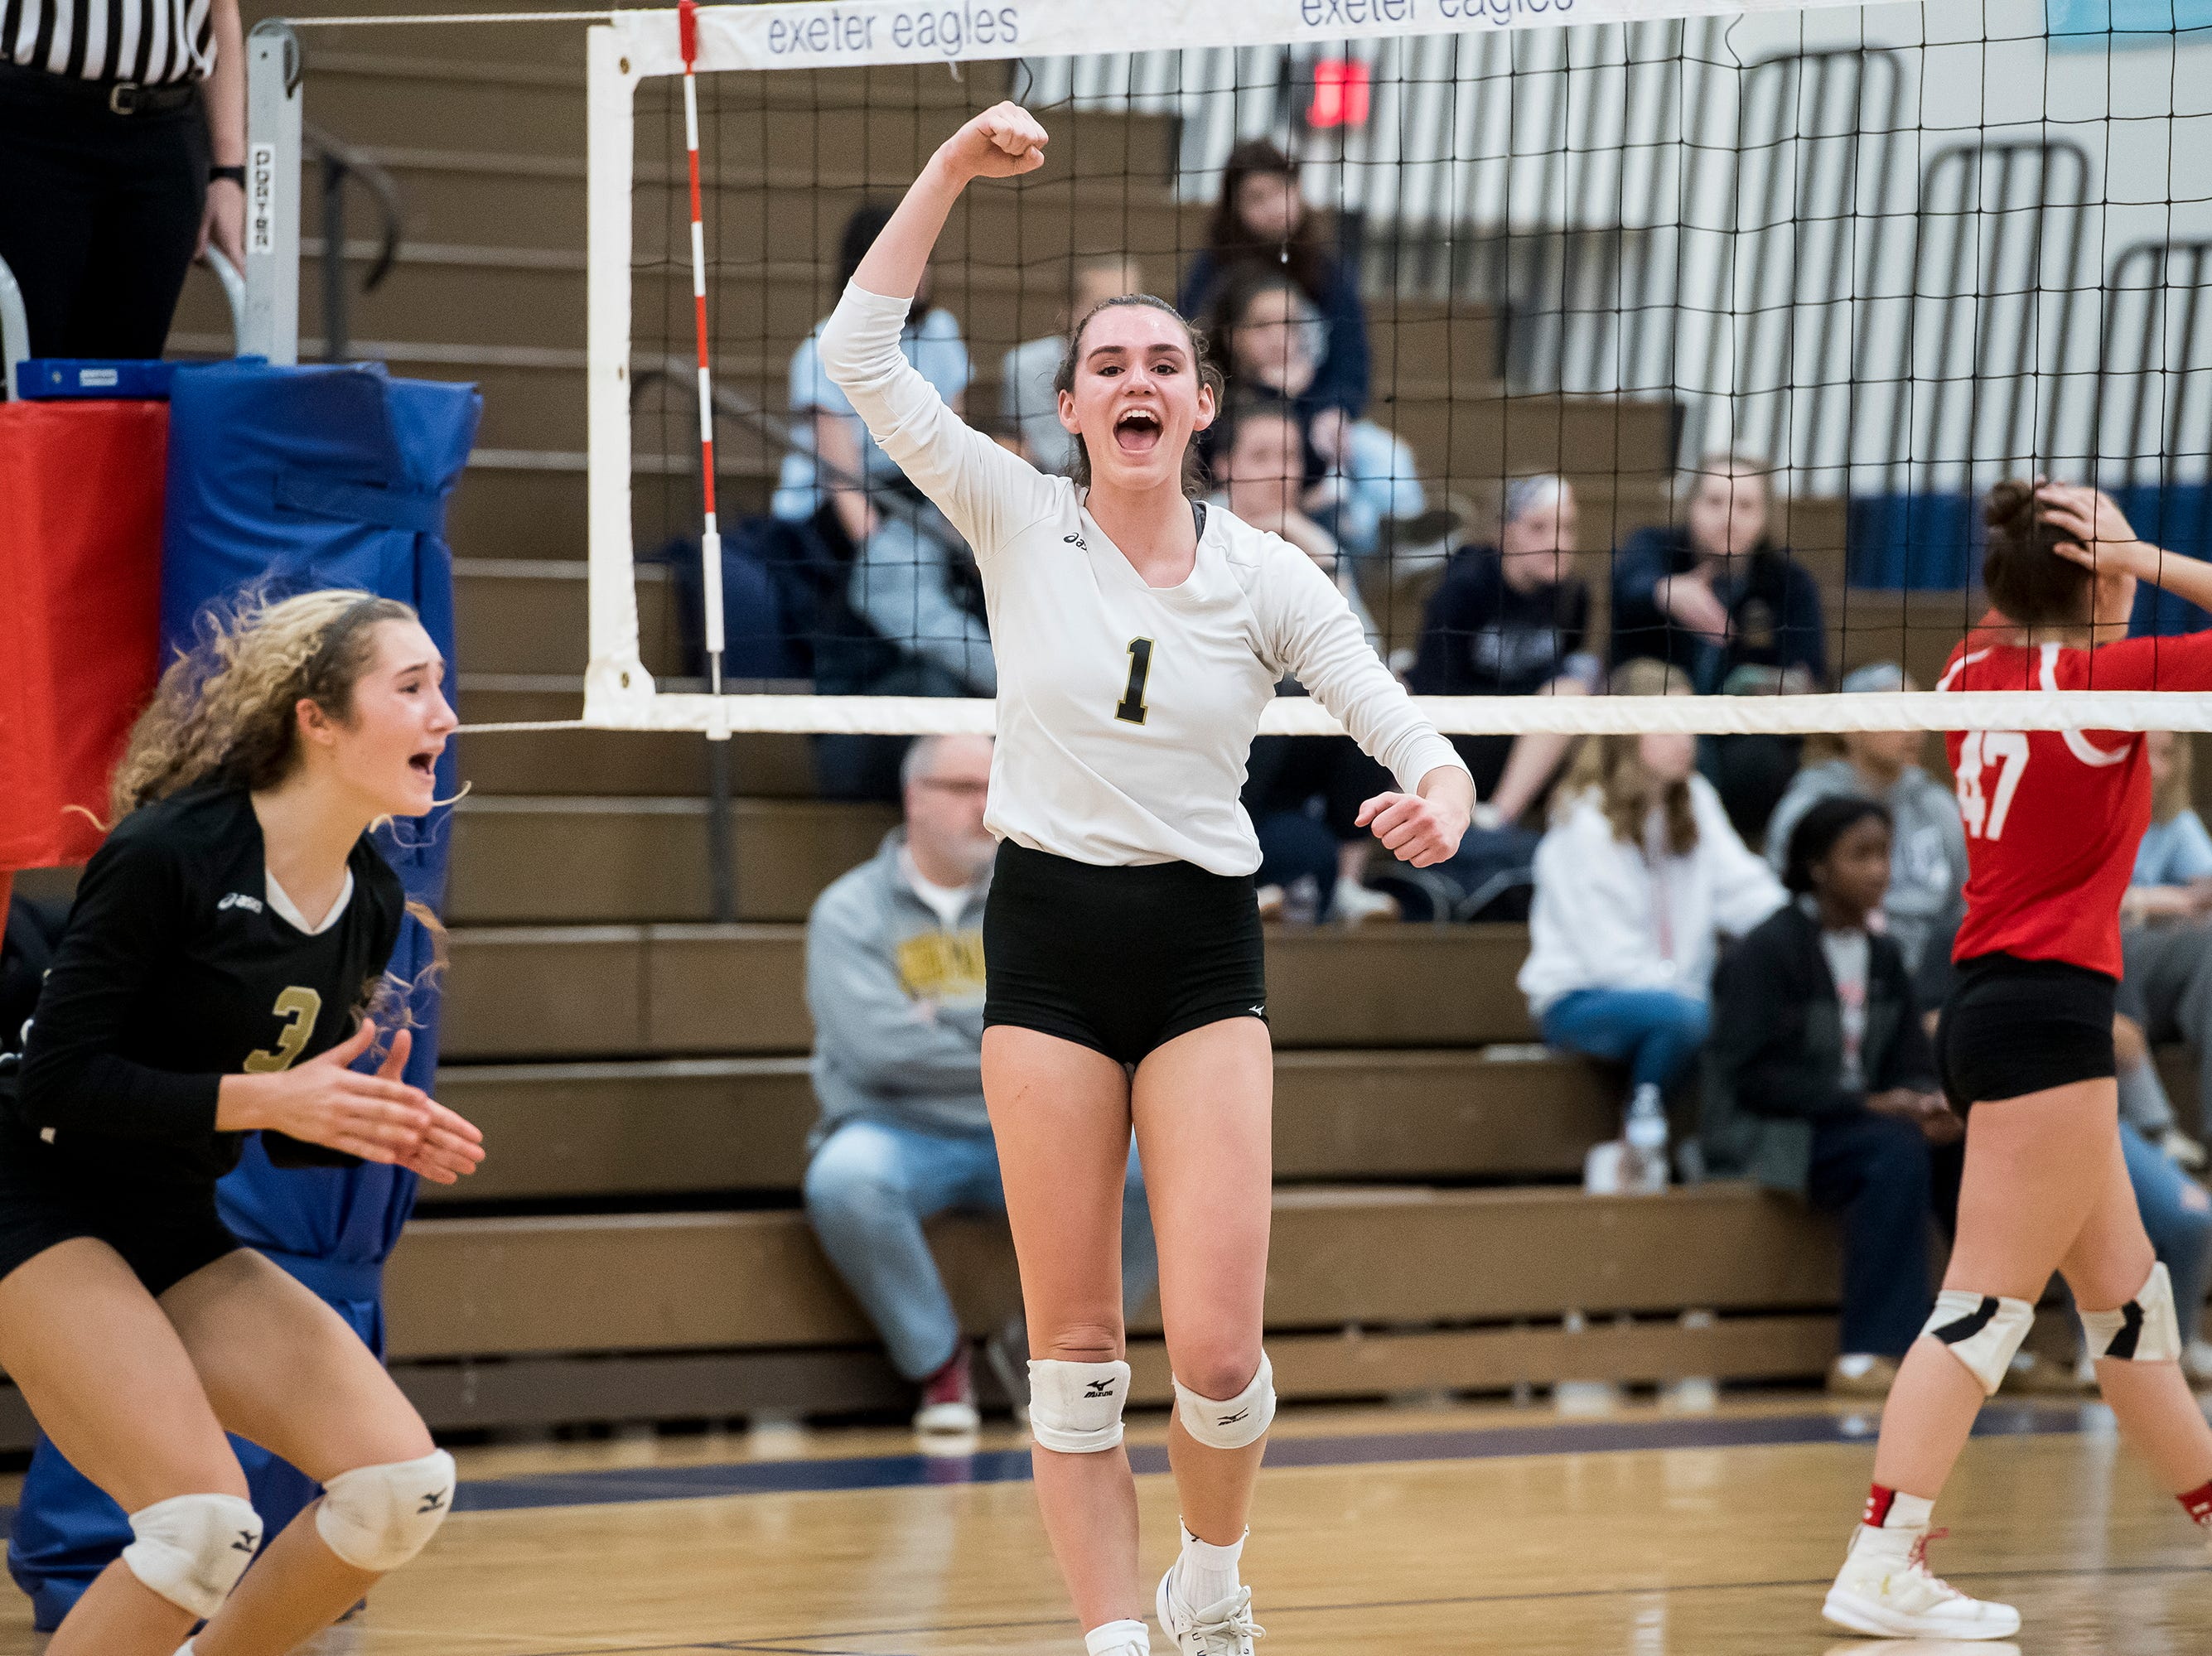 Delone Catholic's Maddie Clabaugh (1) reacts after scoring a point in a PIAA 2A semifinal game against Holy Redeemer at Exeter Township High School in Reading on Tuesday, November 13, 2018. The Squires fell in five sets; 23-25, 25-13, 25-13, 18-25, 15-10.